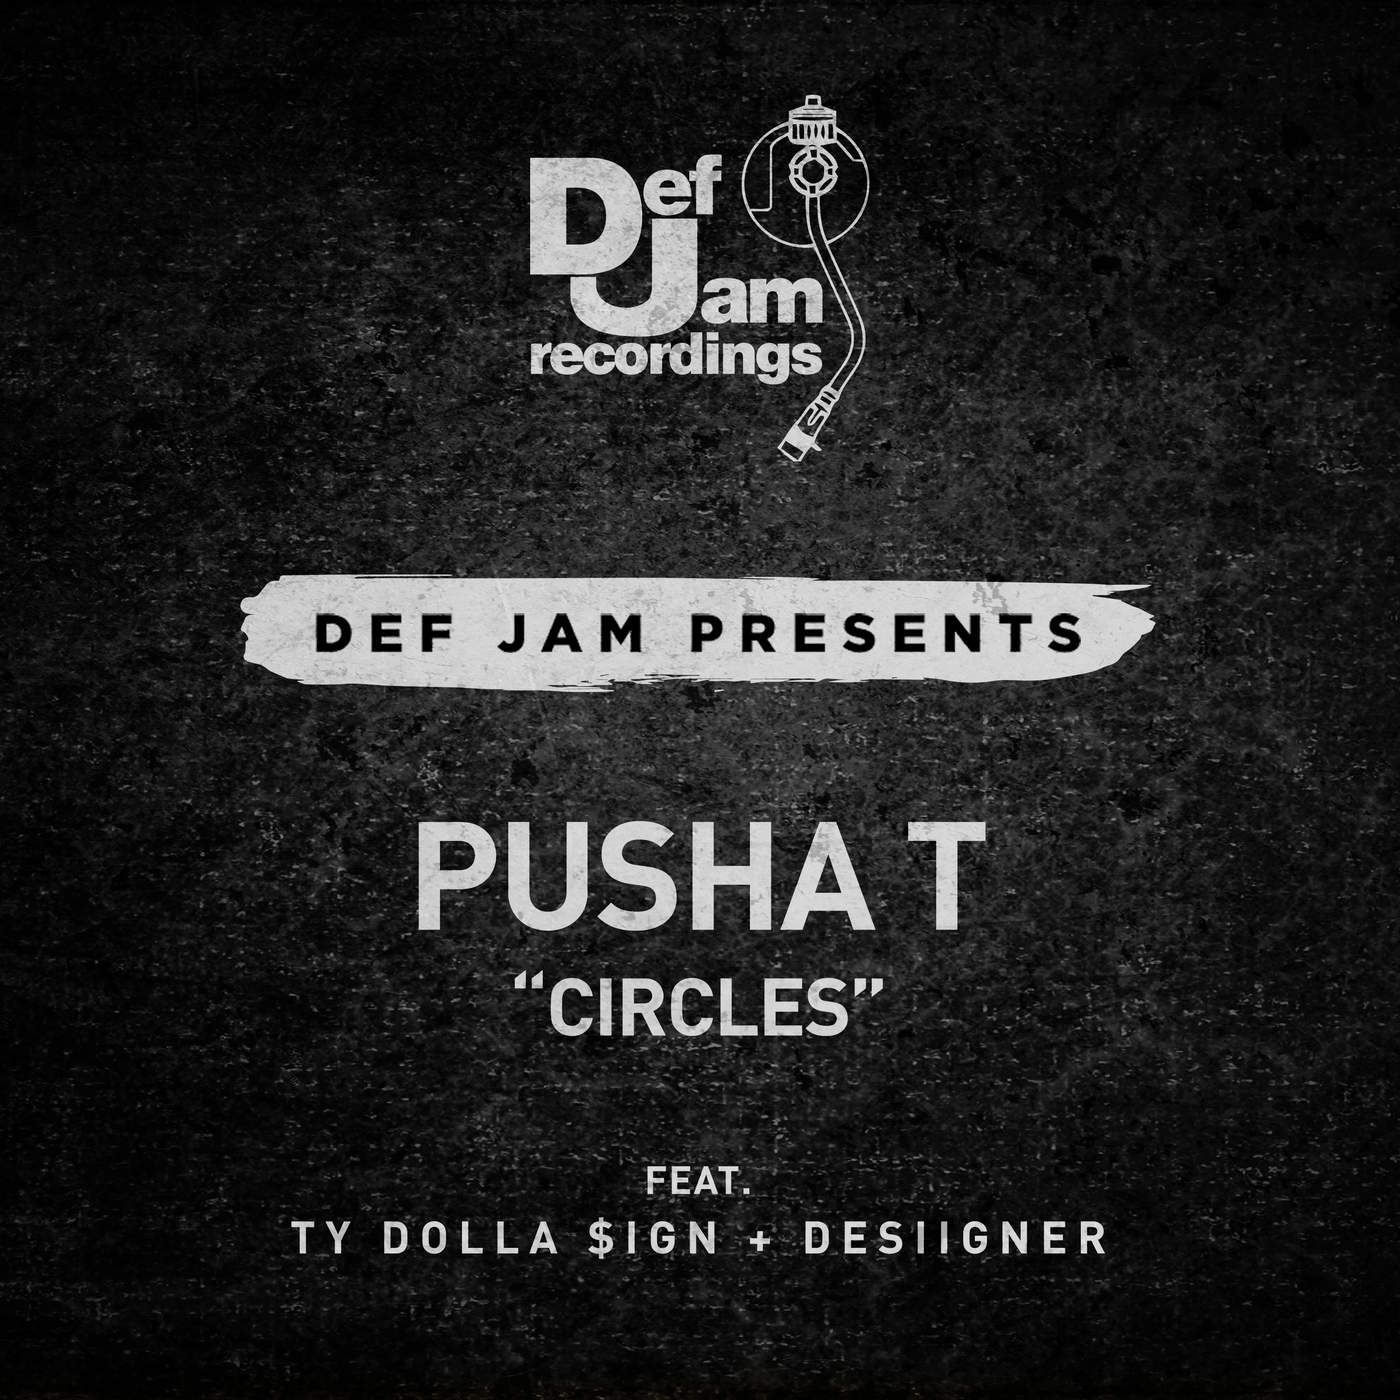 Pusha T - Circles (feat Ty Dolla $ign & Desiigner) - Single Cover